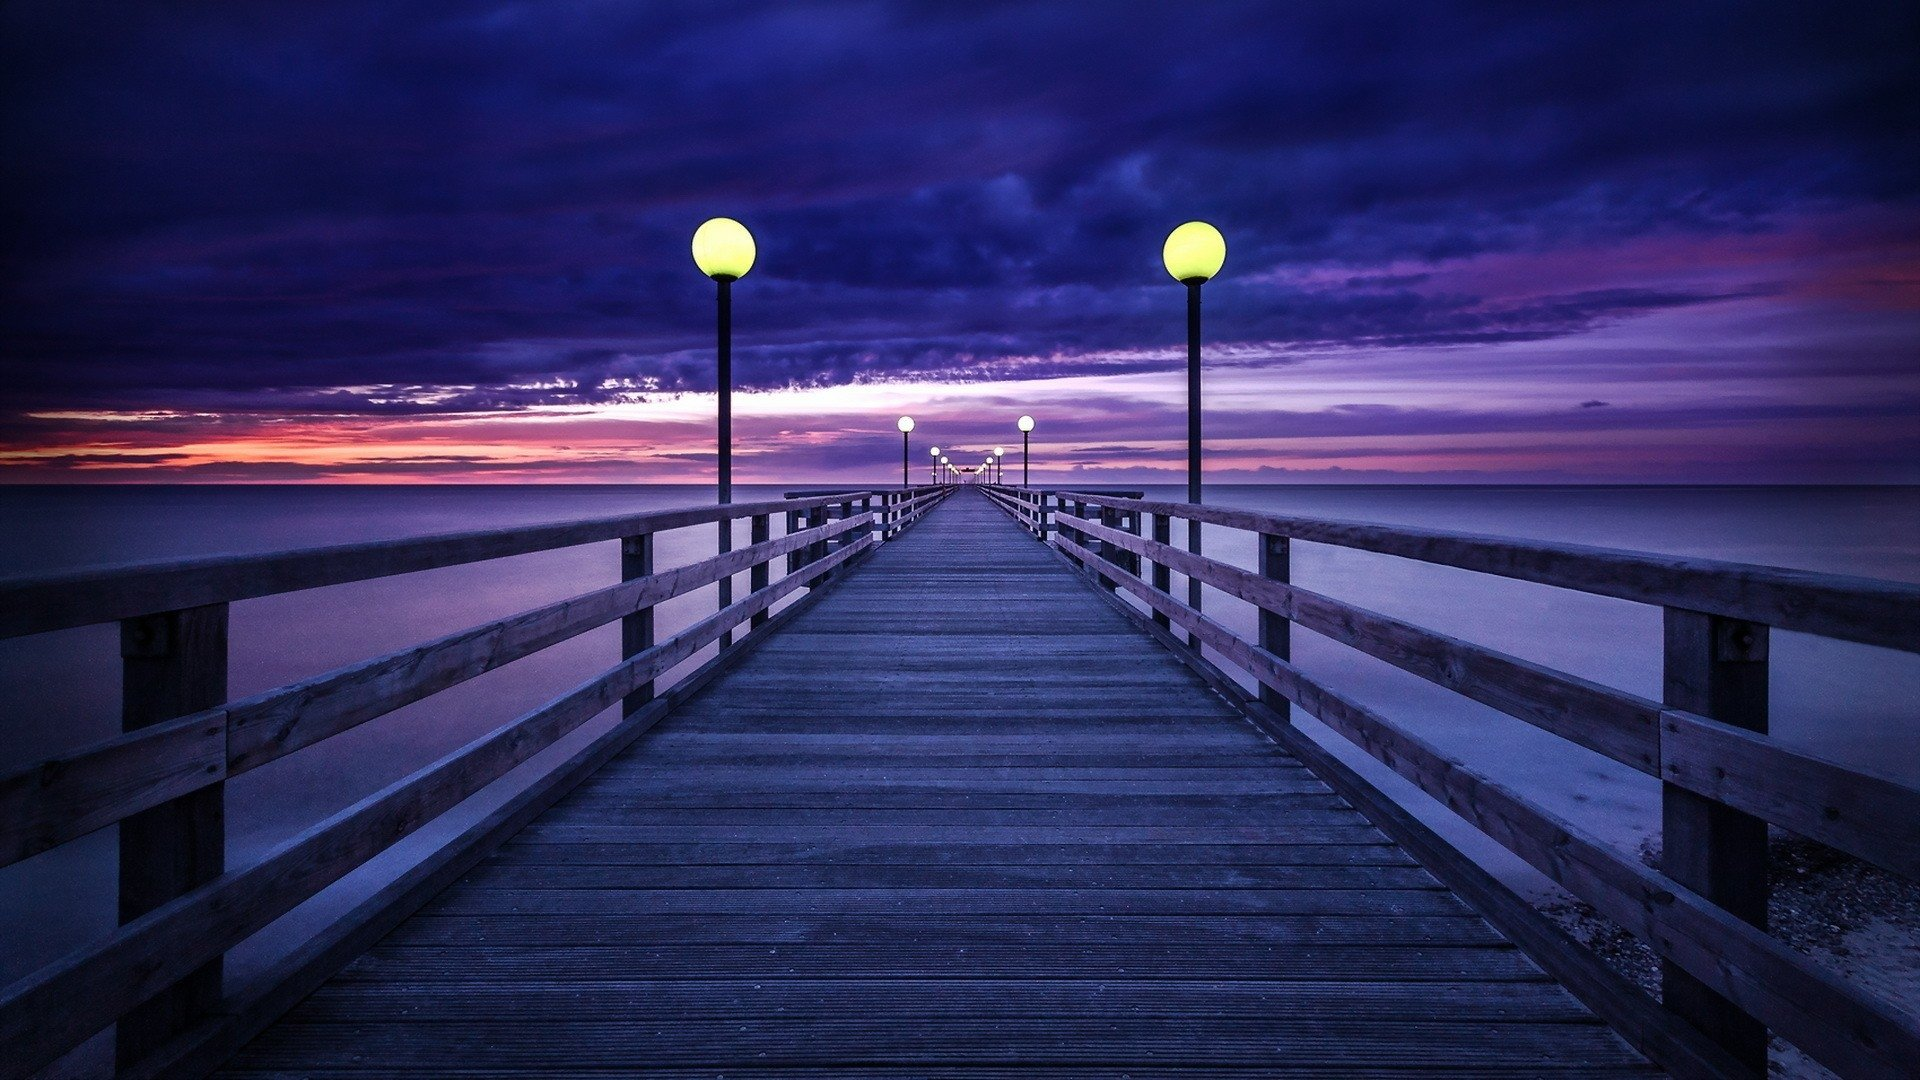 Purple Sunset Sky Over Pier Hd Wallpaper Background Image 1920x1080 Id 1026263 Wallpaper Abyss